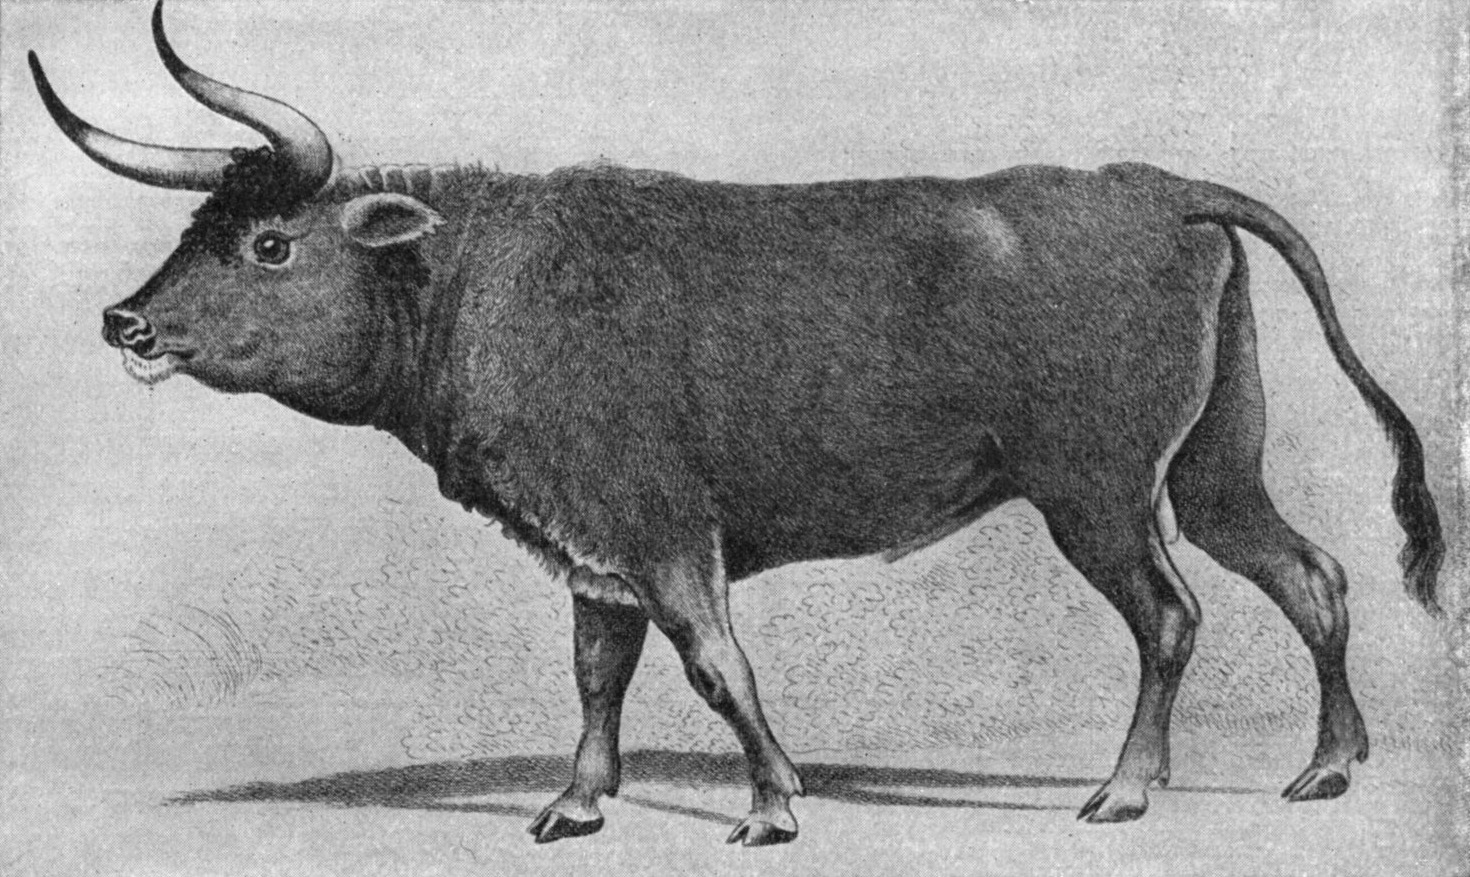 Nazi zoologists were commissioned by the Nazi party to produce a breed of cattle based on aurochs (the Aryan Cow)